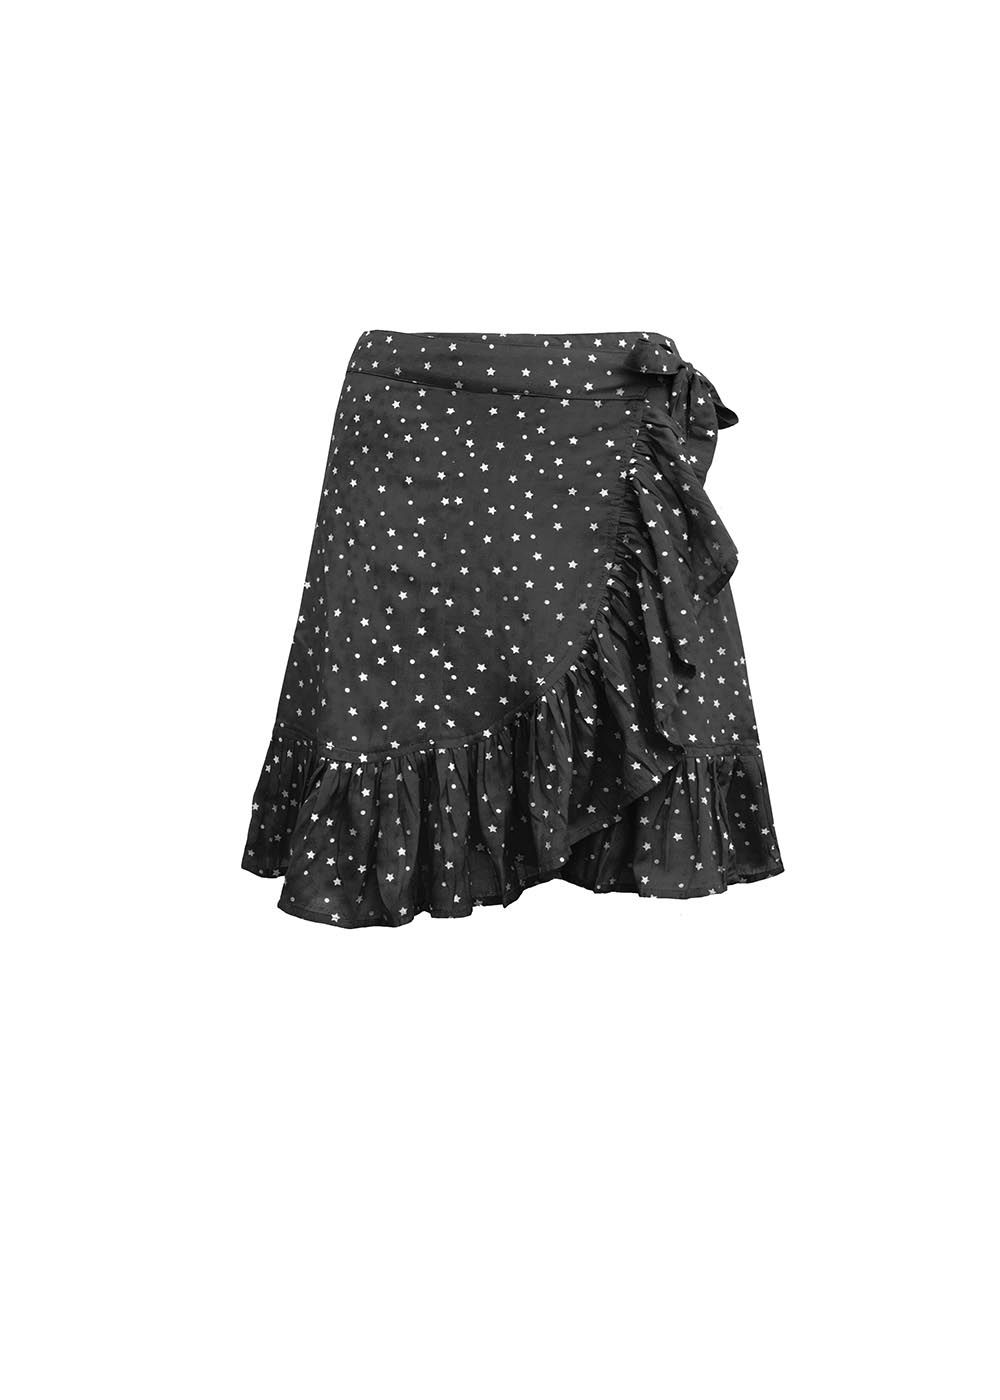 BLACK WRAP SKIRT WITH STARS